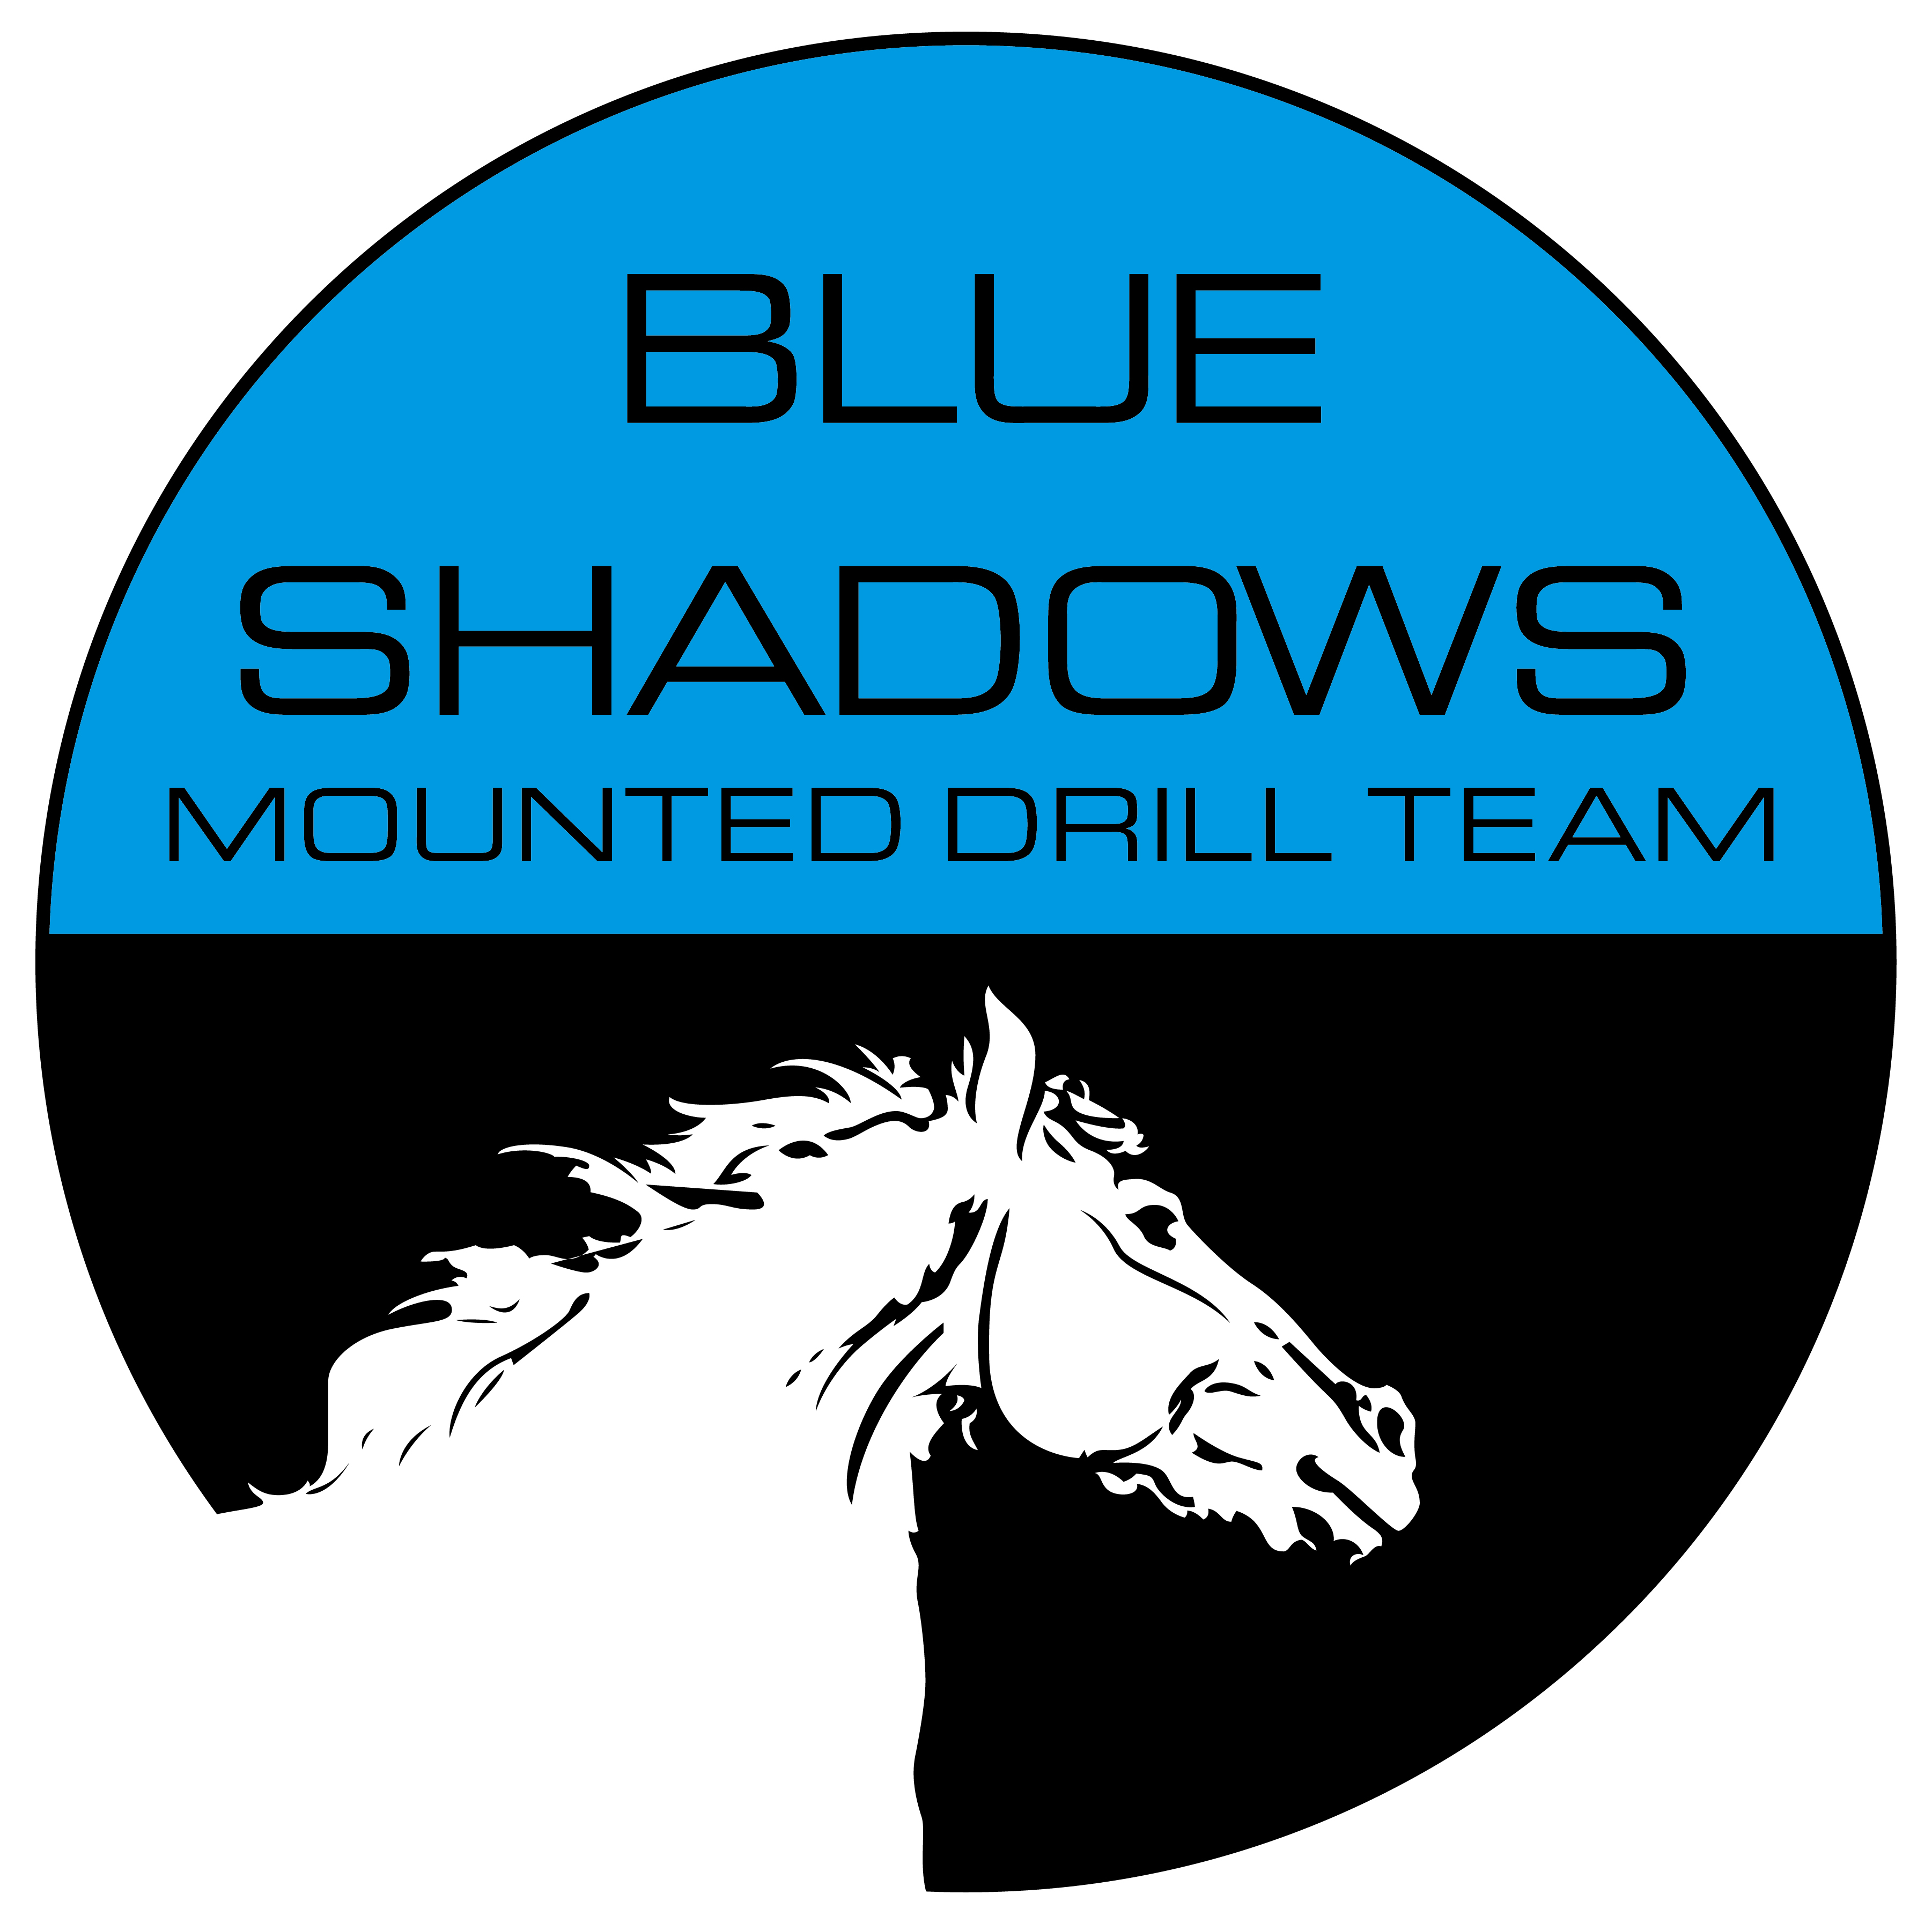 Blue Shadows Mounted Drill Team